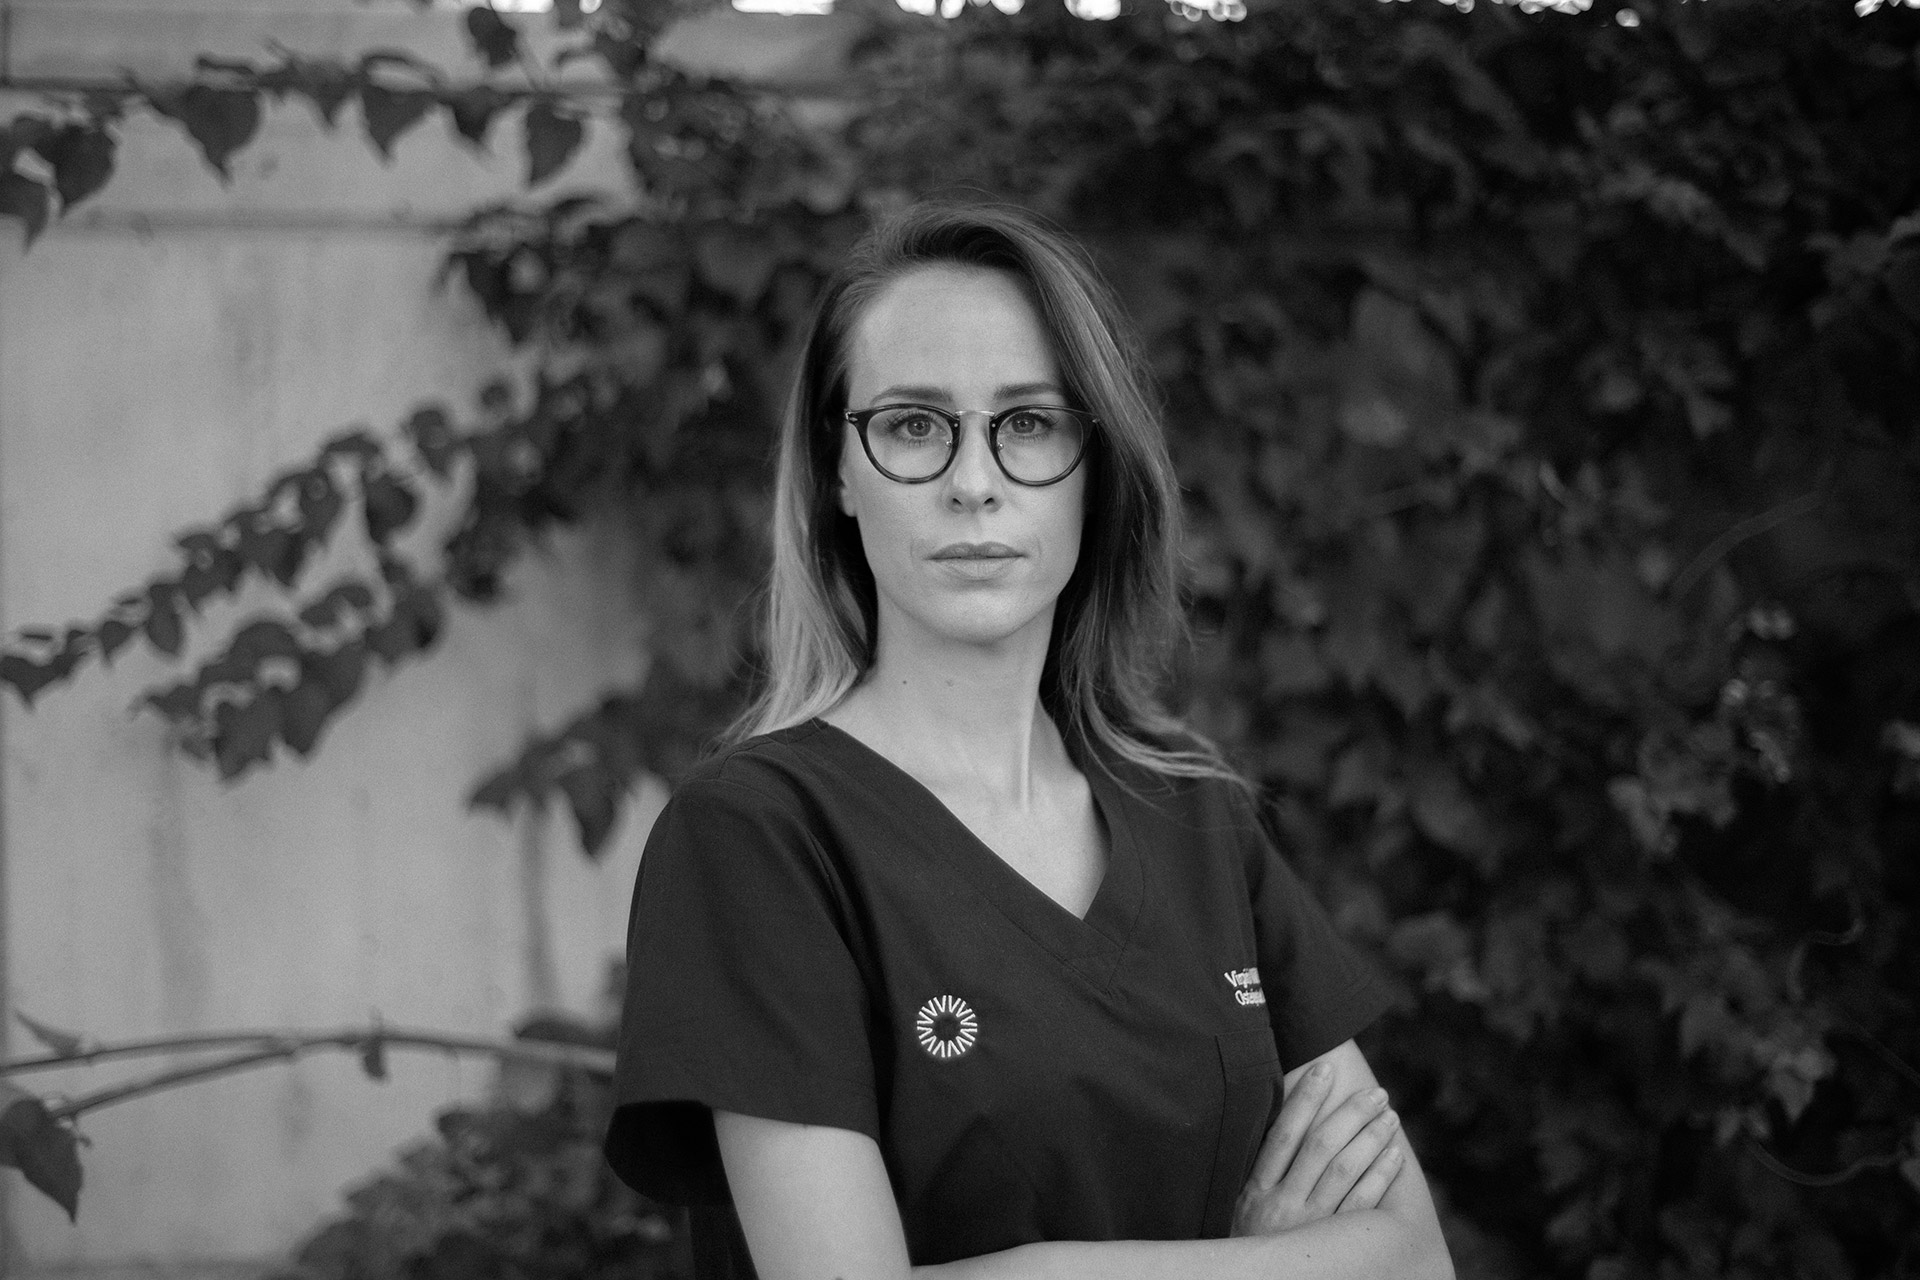 virginia-millan-osteopata-barcelona-2